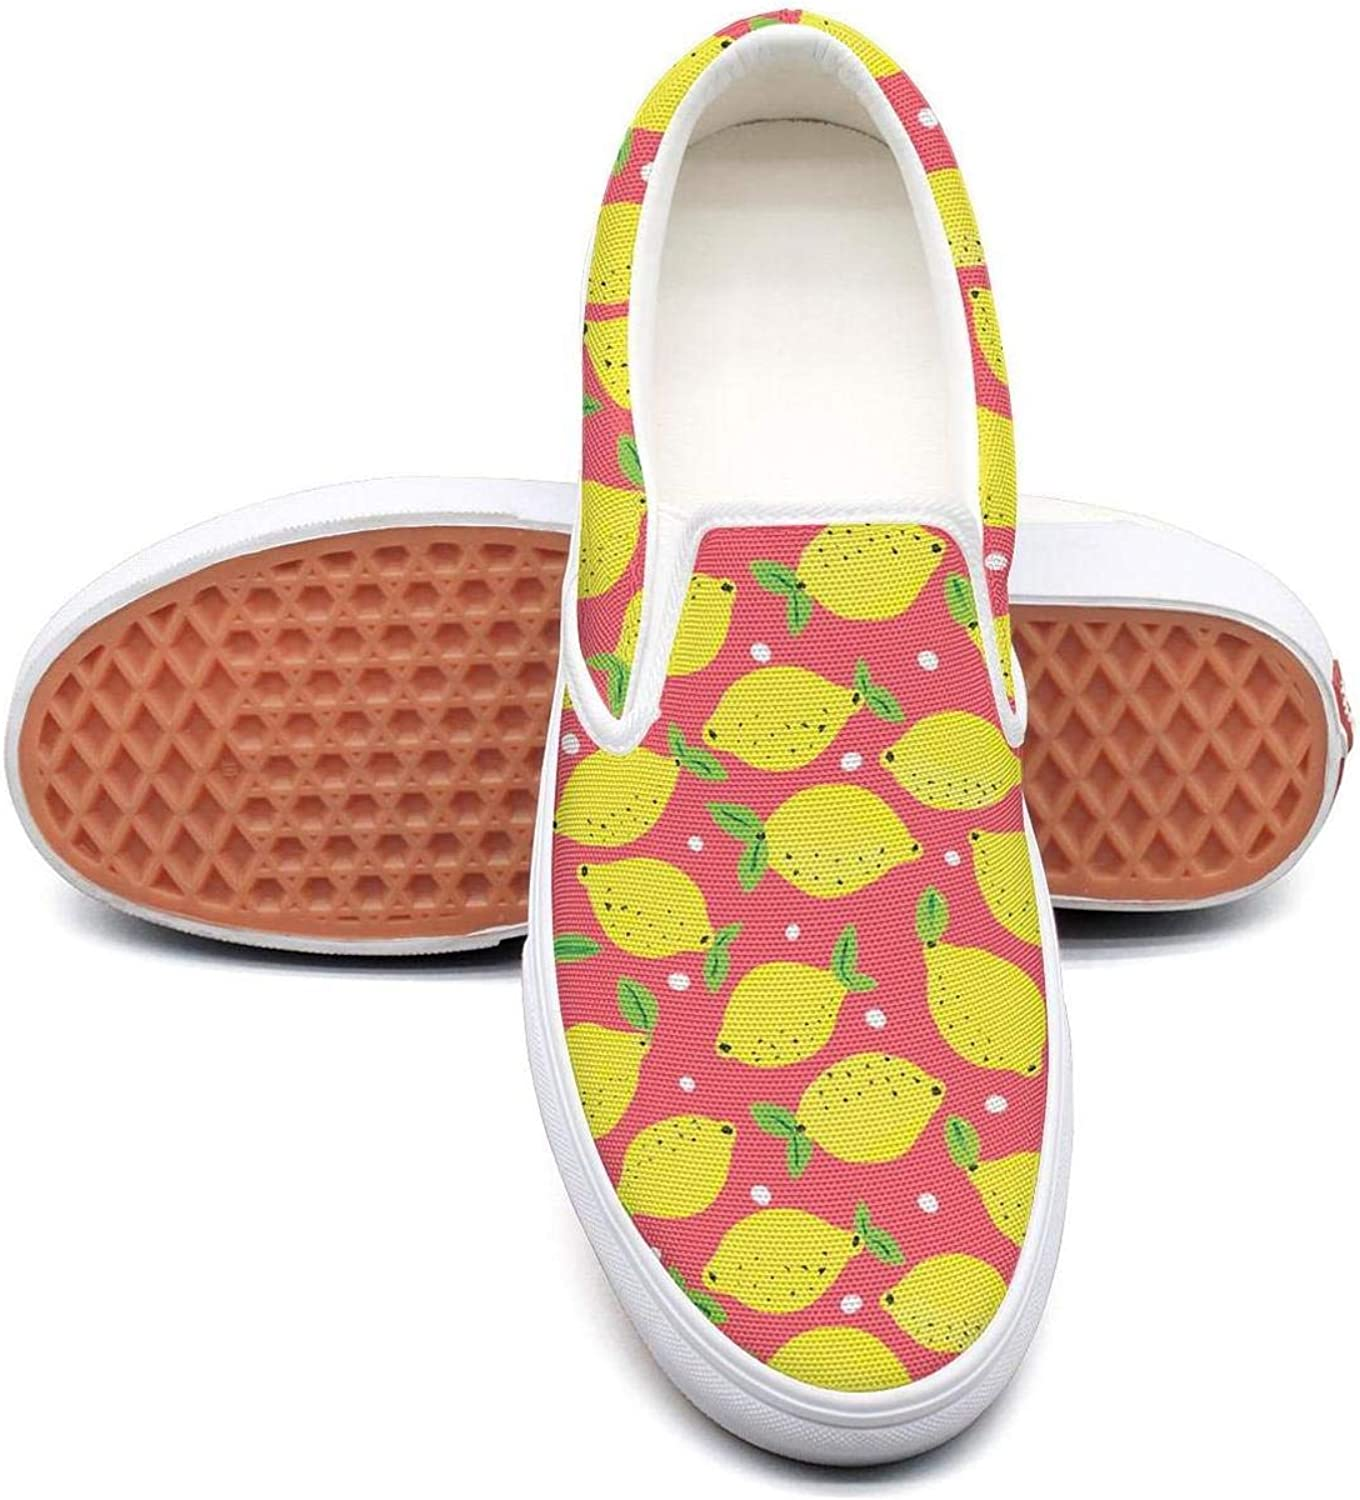 SKULLP Lemon Yellow Sketch Gym shoes for Women Lo-Top Shock Absorption Lace-Up Running shoes